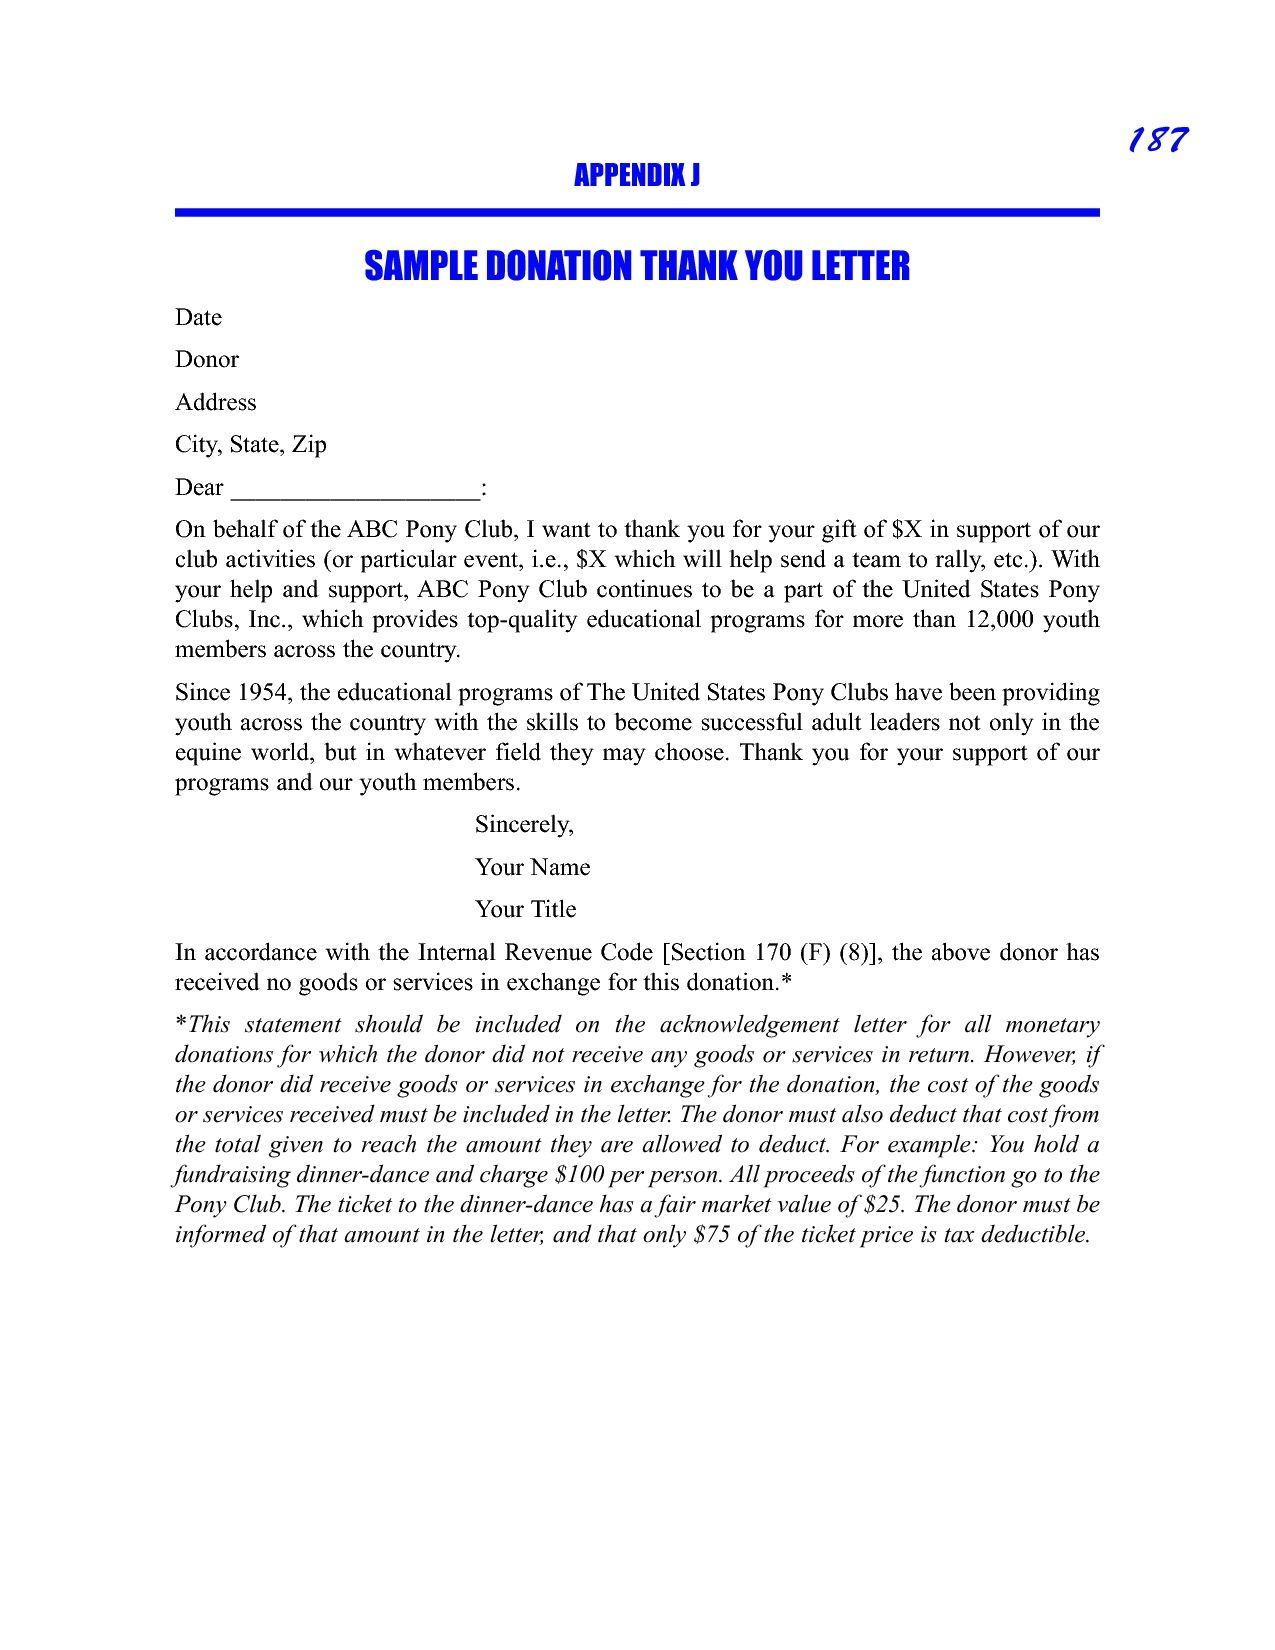 Donation Thank You Letter Best Business Template For Charitable